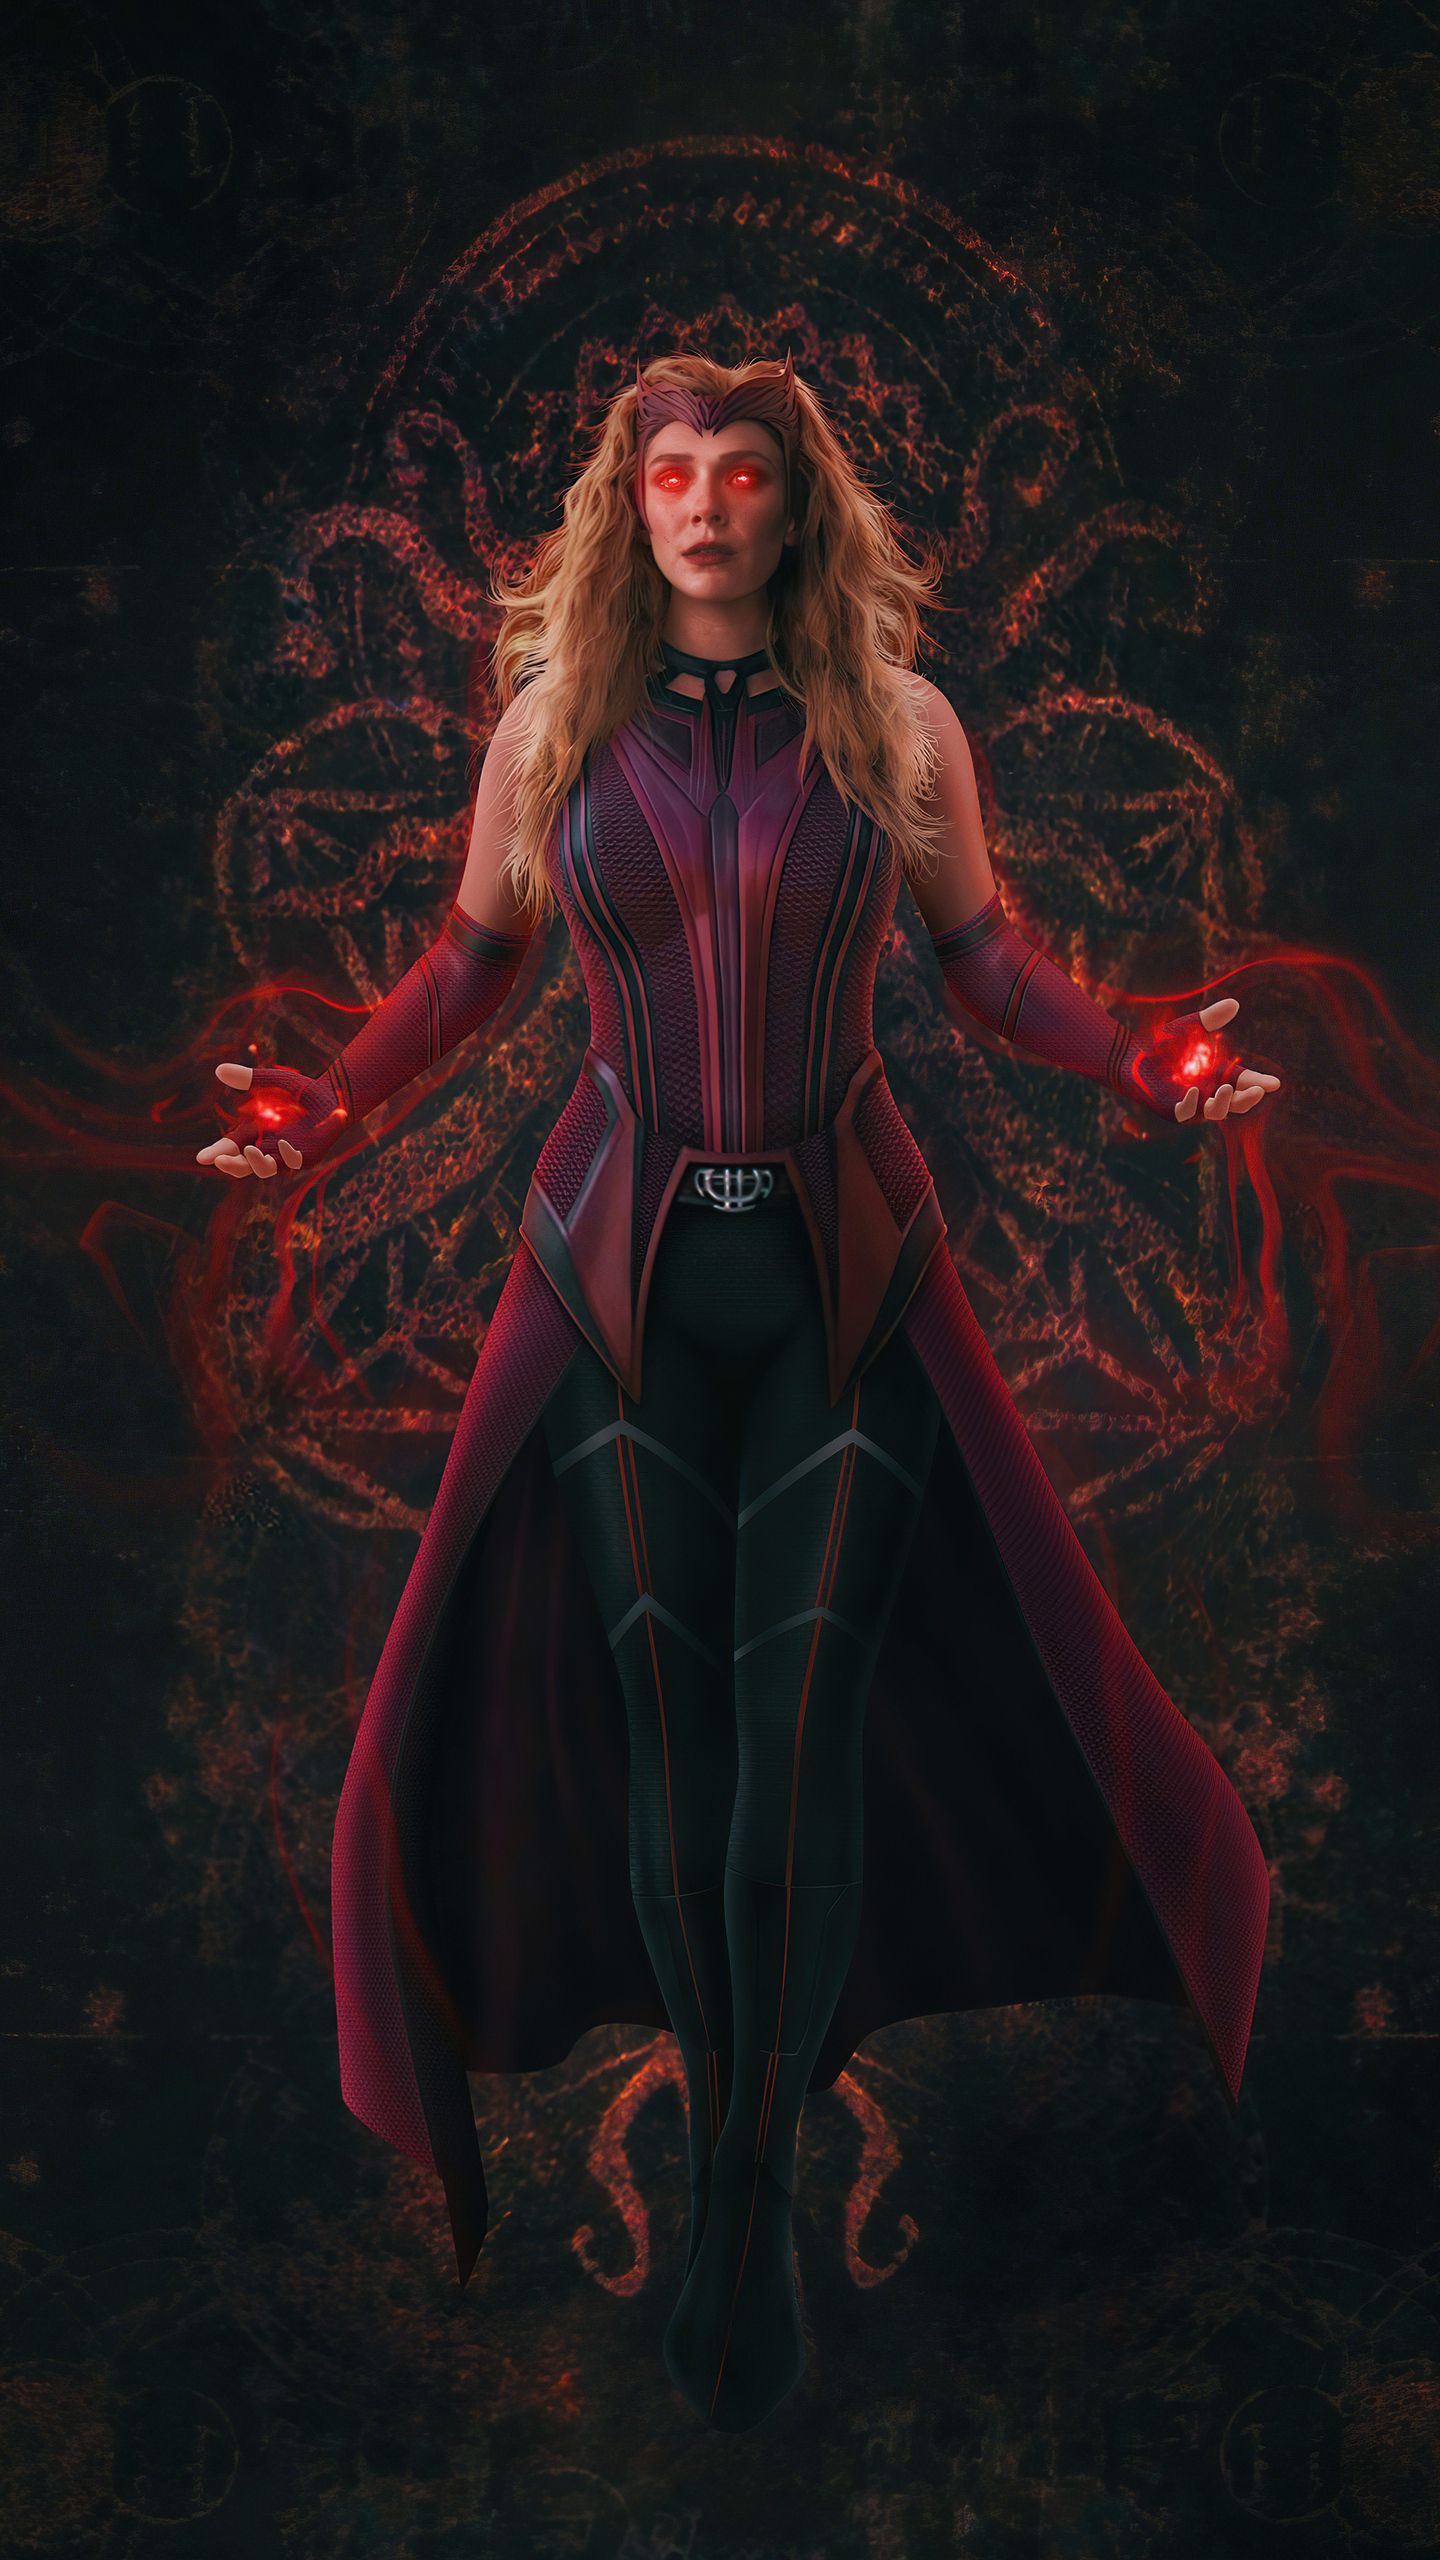 Wanda Vision Scarlet Witch Wallpapers   hdqwalls.com